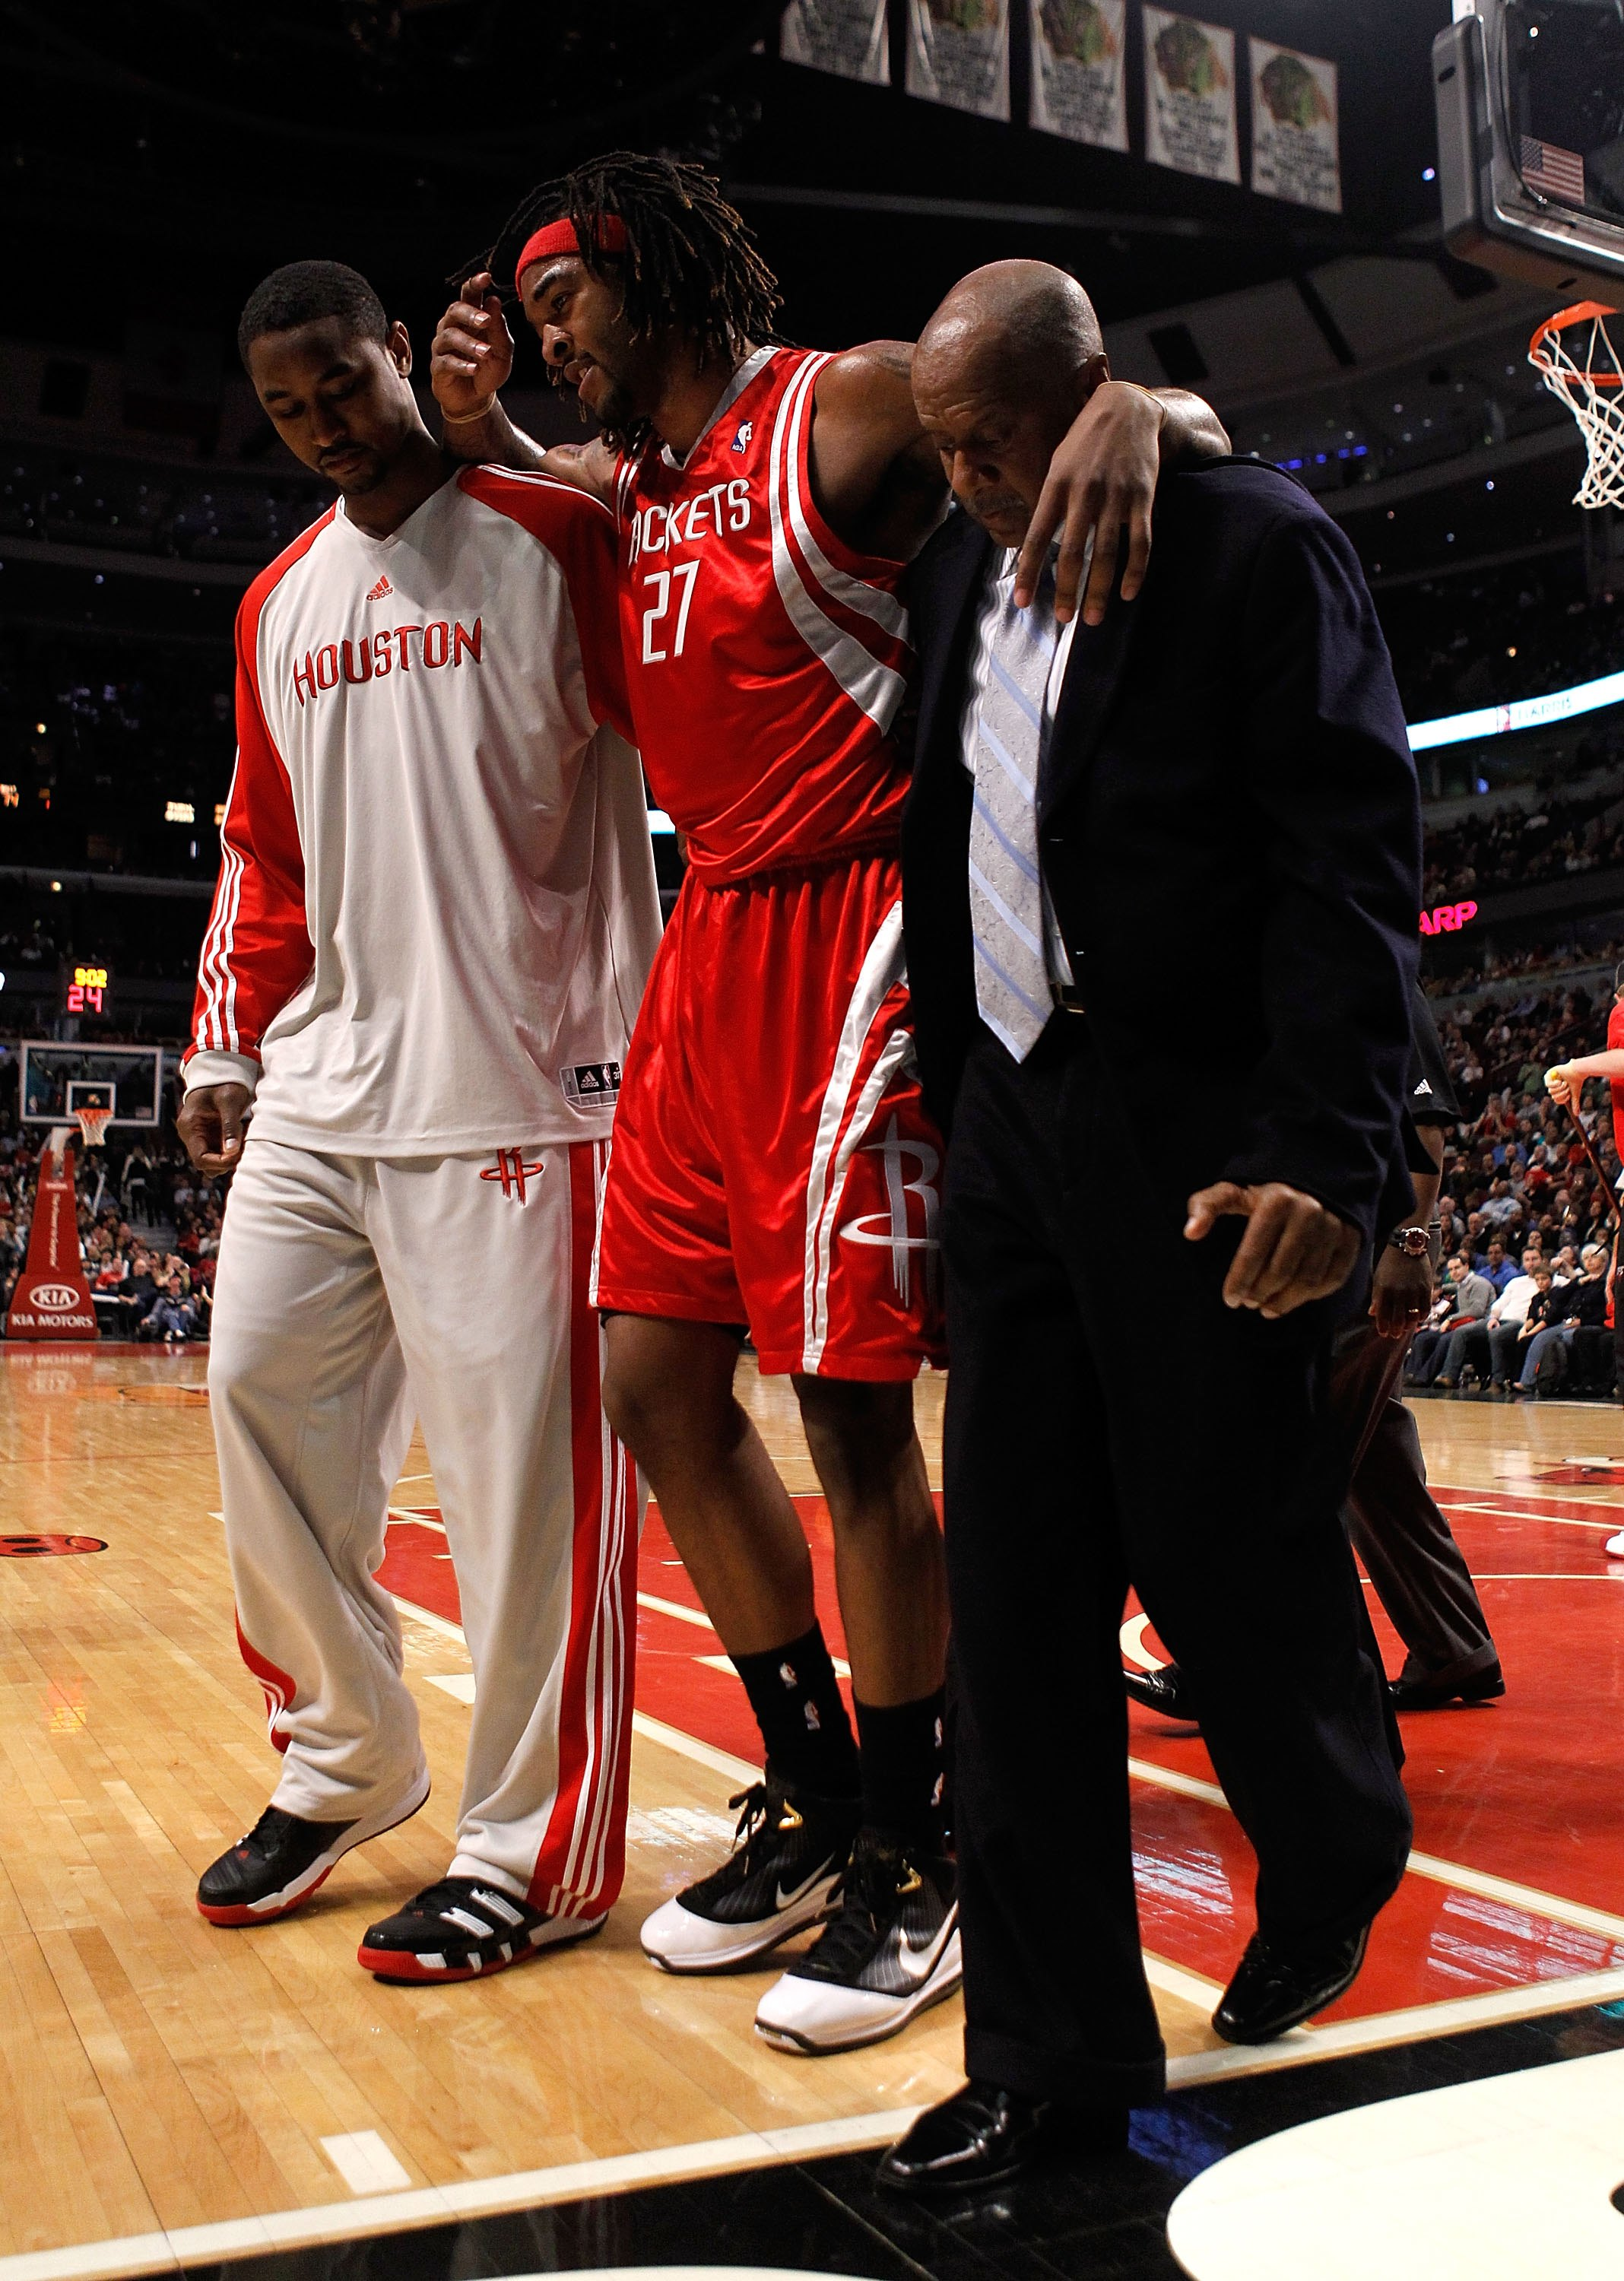 CHICAGO - MARCH 22: Jordan Hill #27 of the Houston Rockets is helped off the court after injuring his leg against the Chicago Bulls at the United Center on March 22, 2010 in Chicago, Illinois. The Bulls defeated the Rockets 98-88. NOTE TO USER: User expre